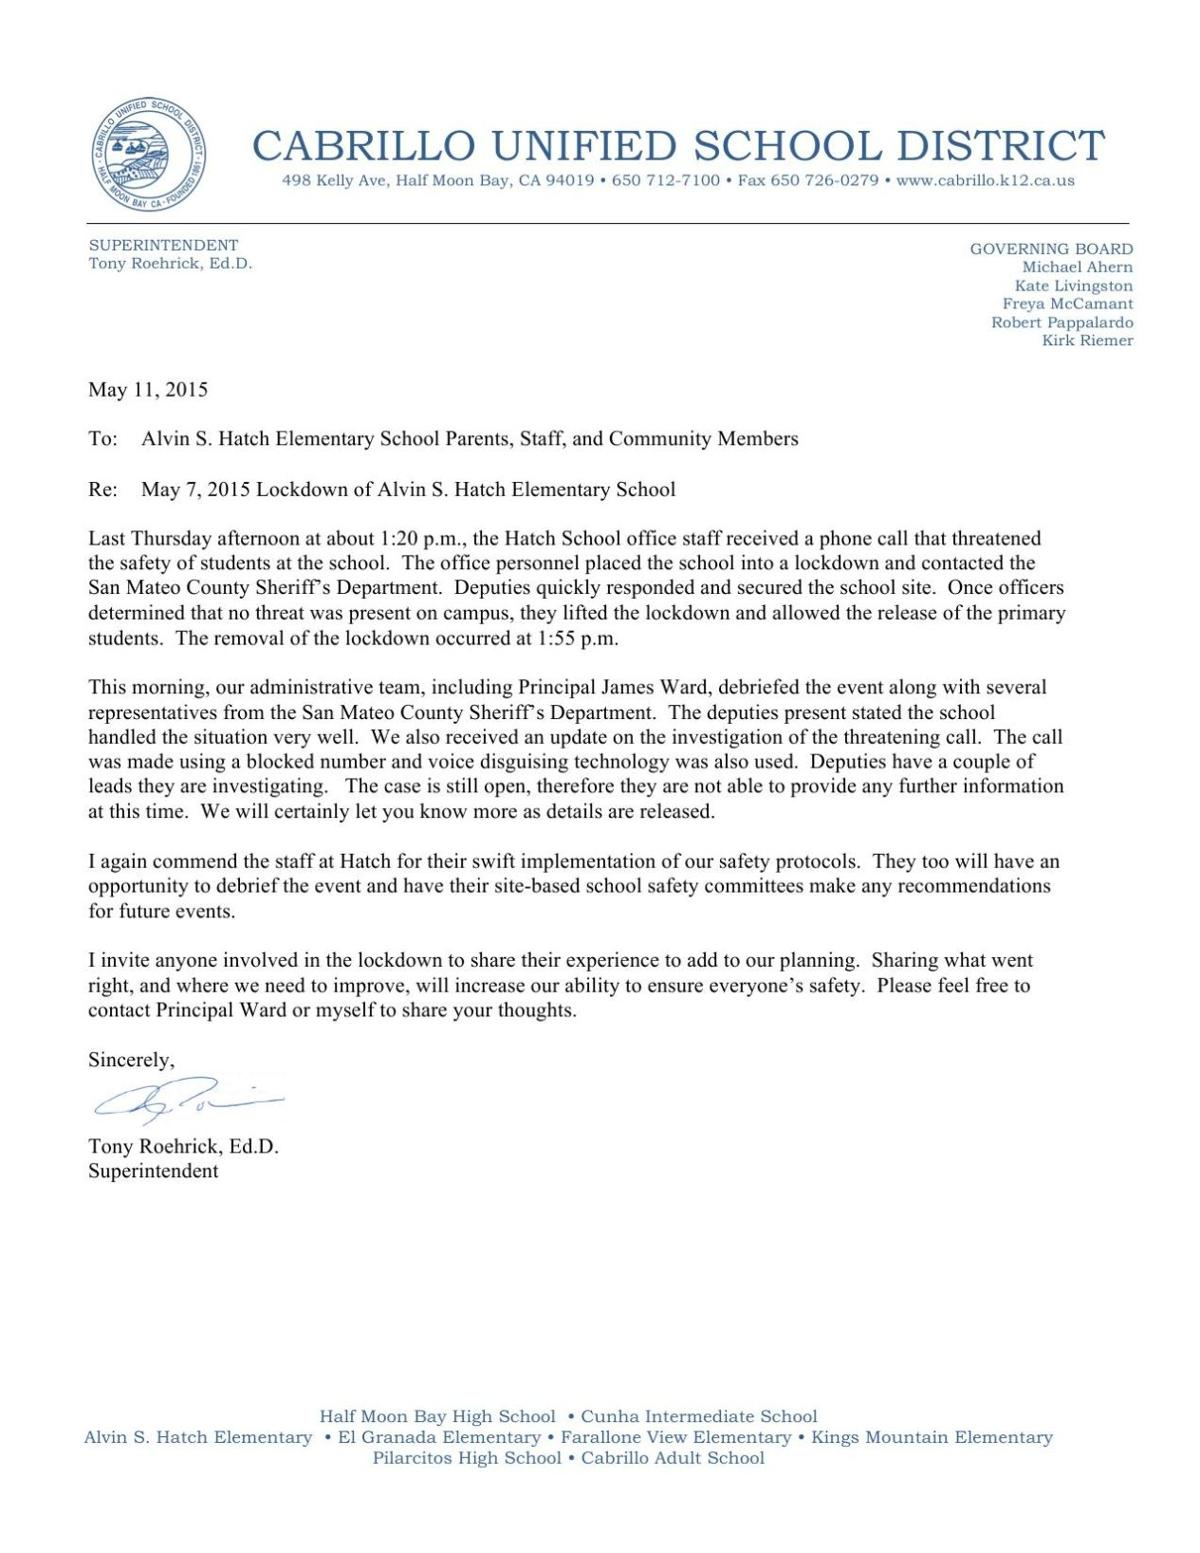 Superintendent's response | Local News Stories | hmbreview com